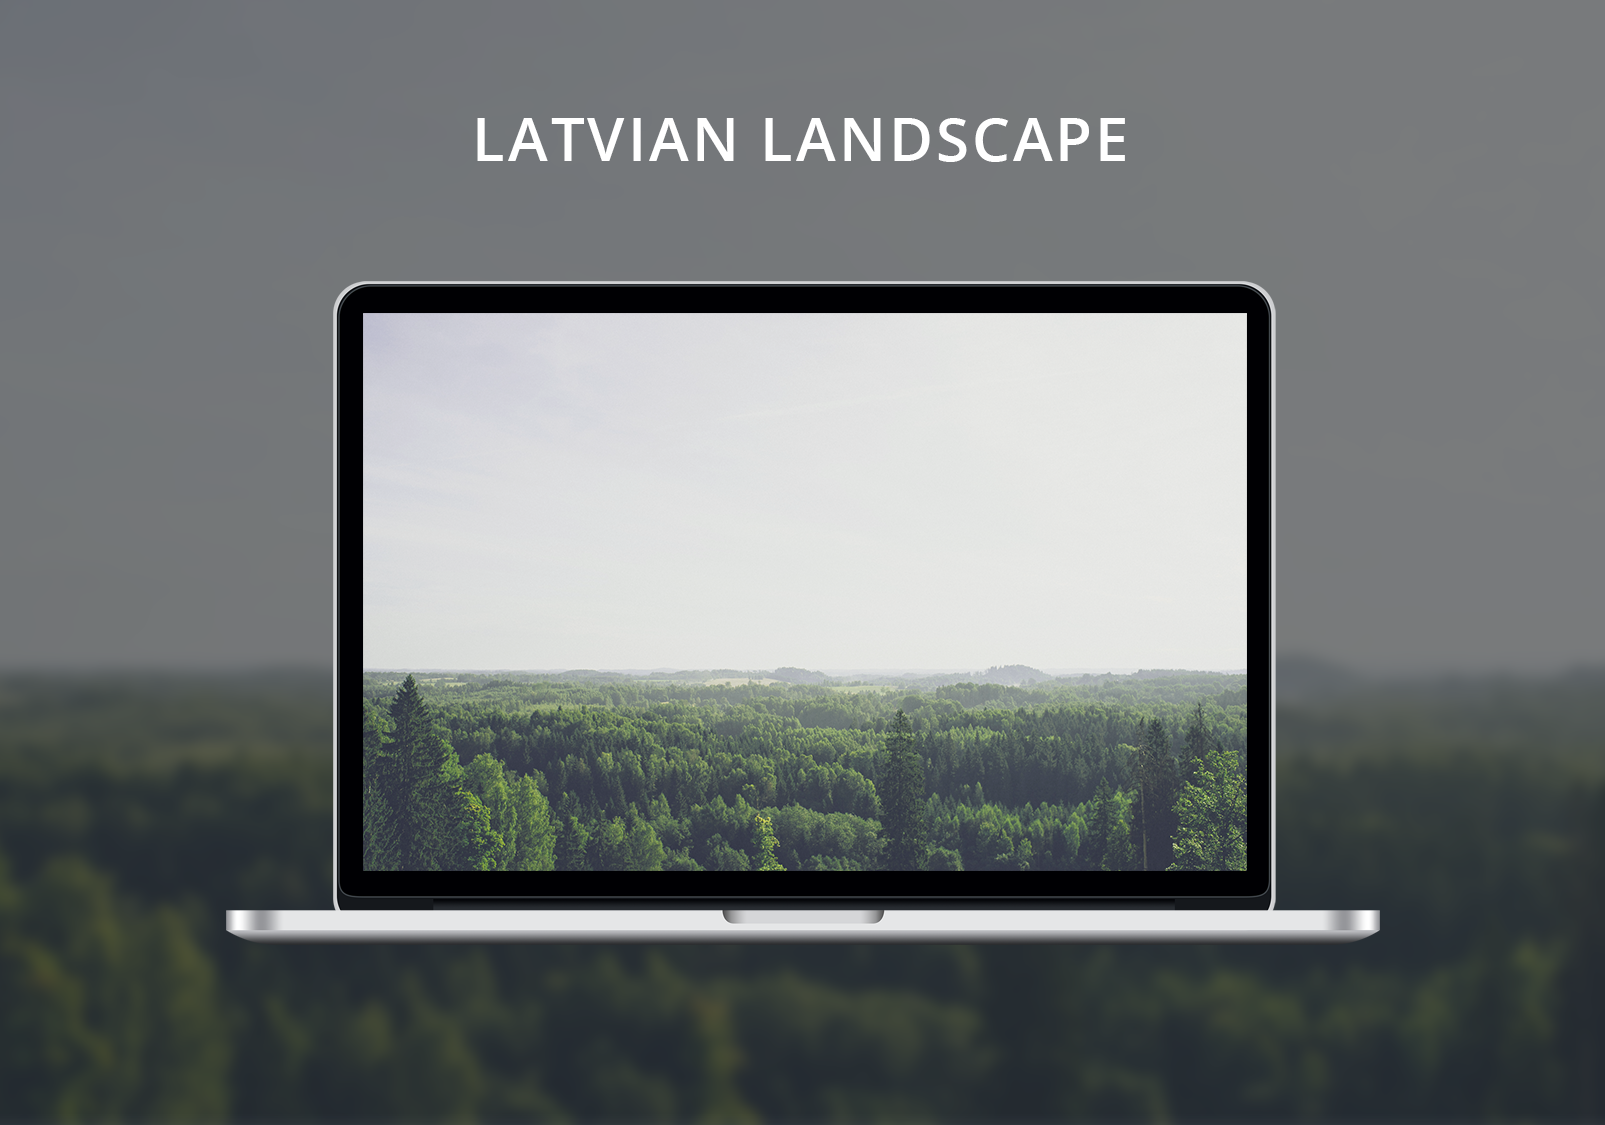 Latvian Landscape by CarlKempe on DeviantArt